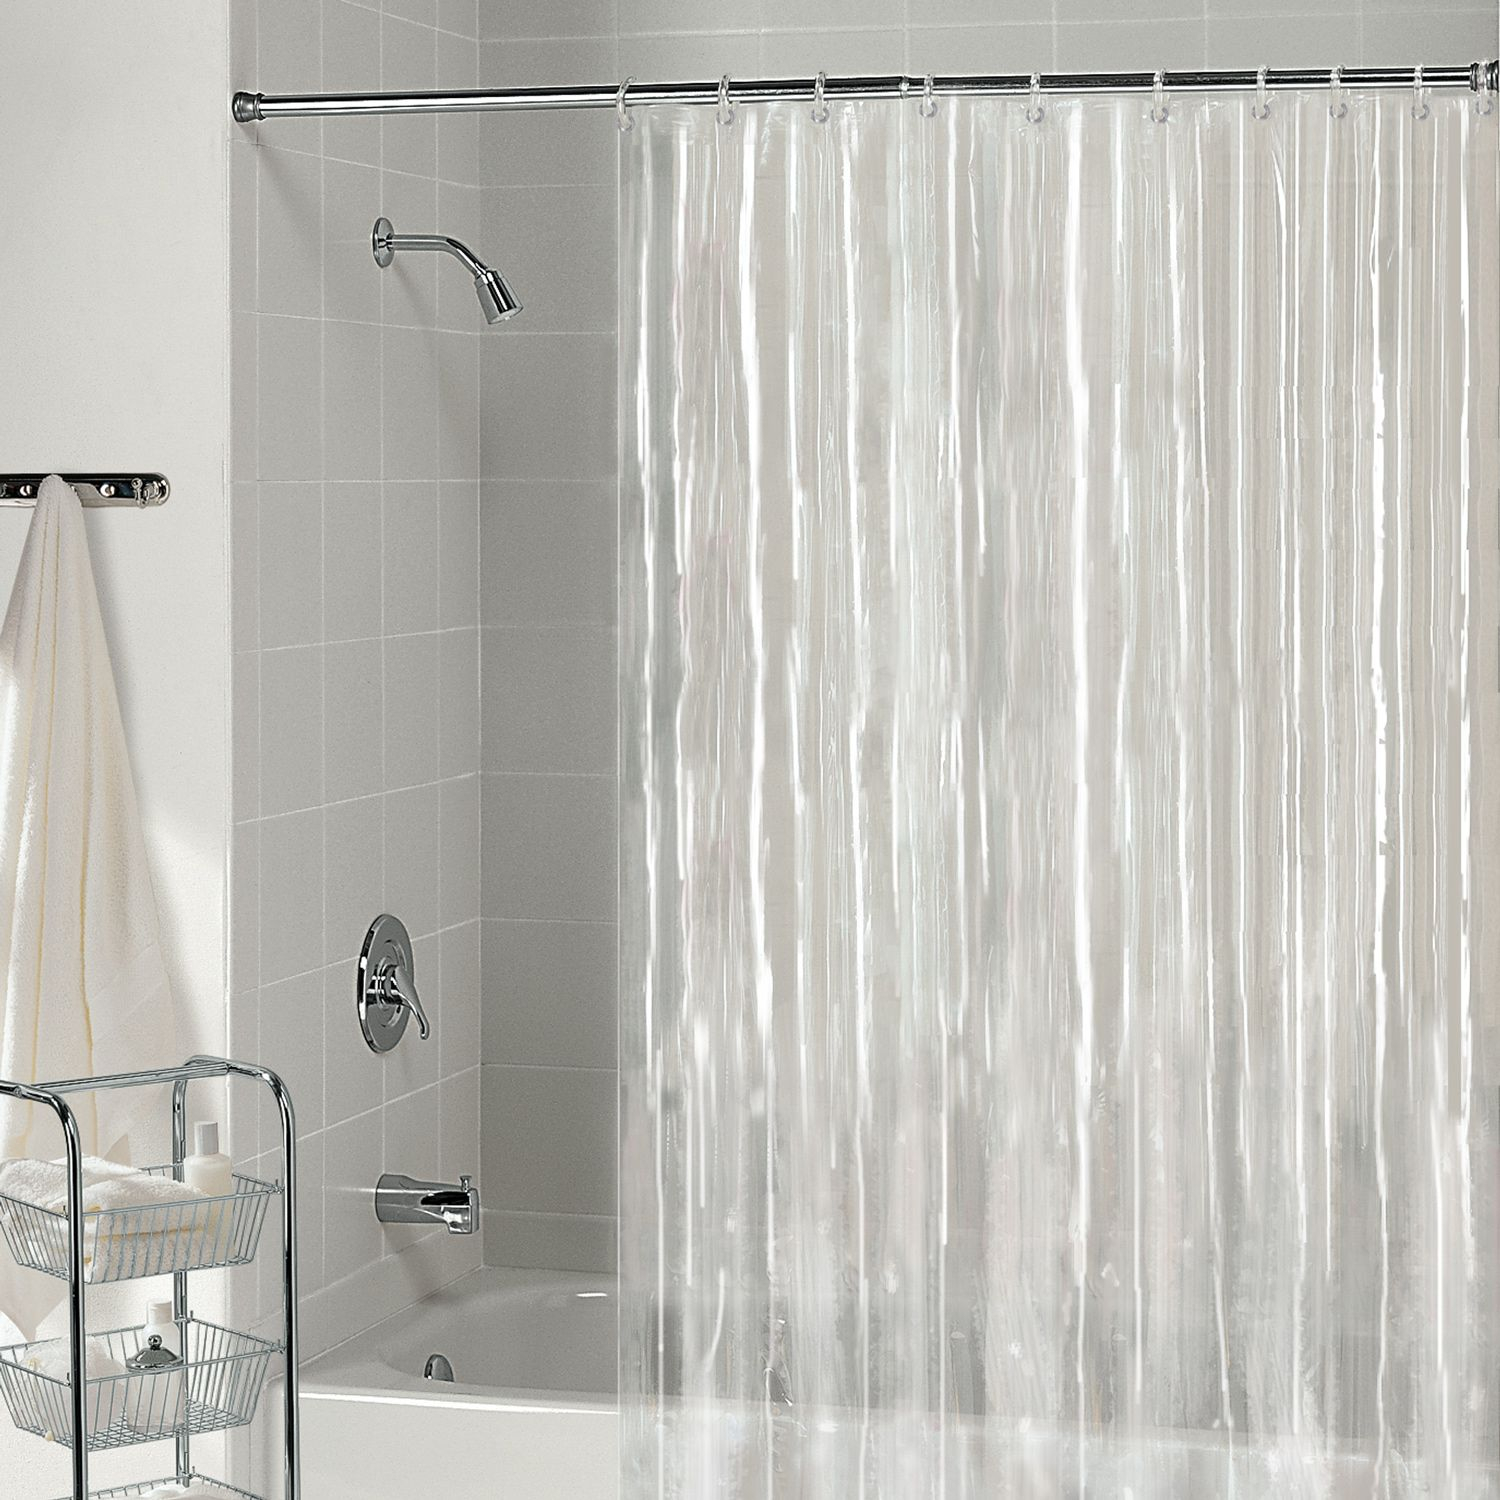 Extra Long Shower Curtain Rods • Shower Curtains Ideas